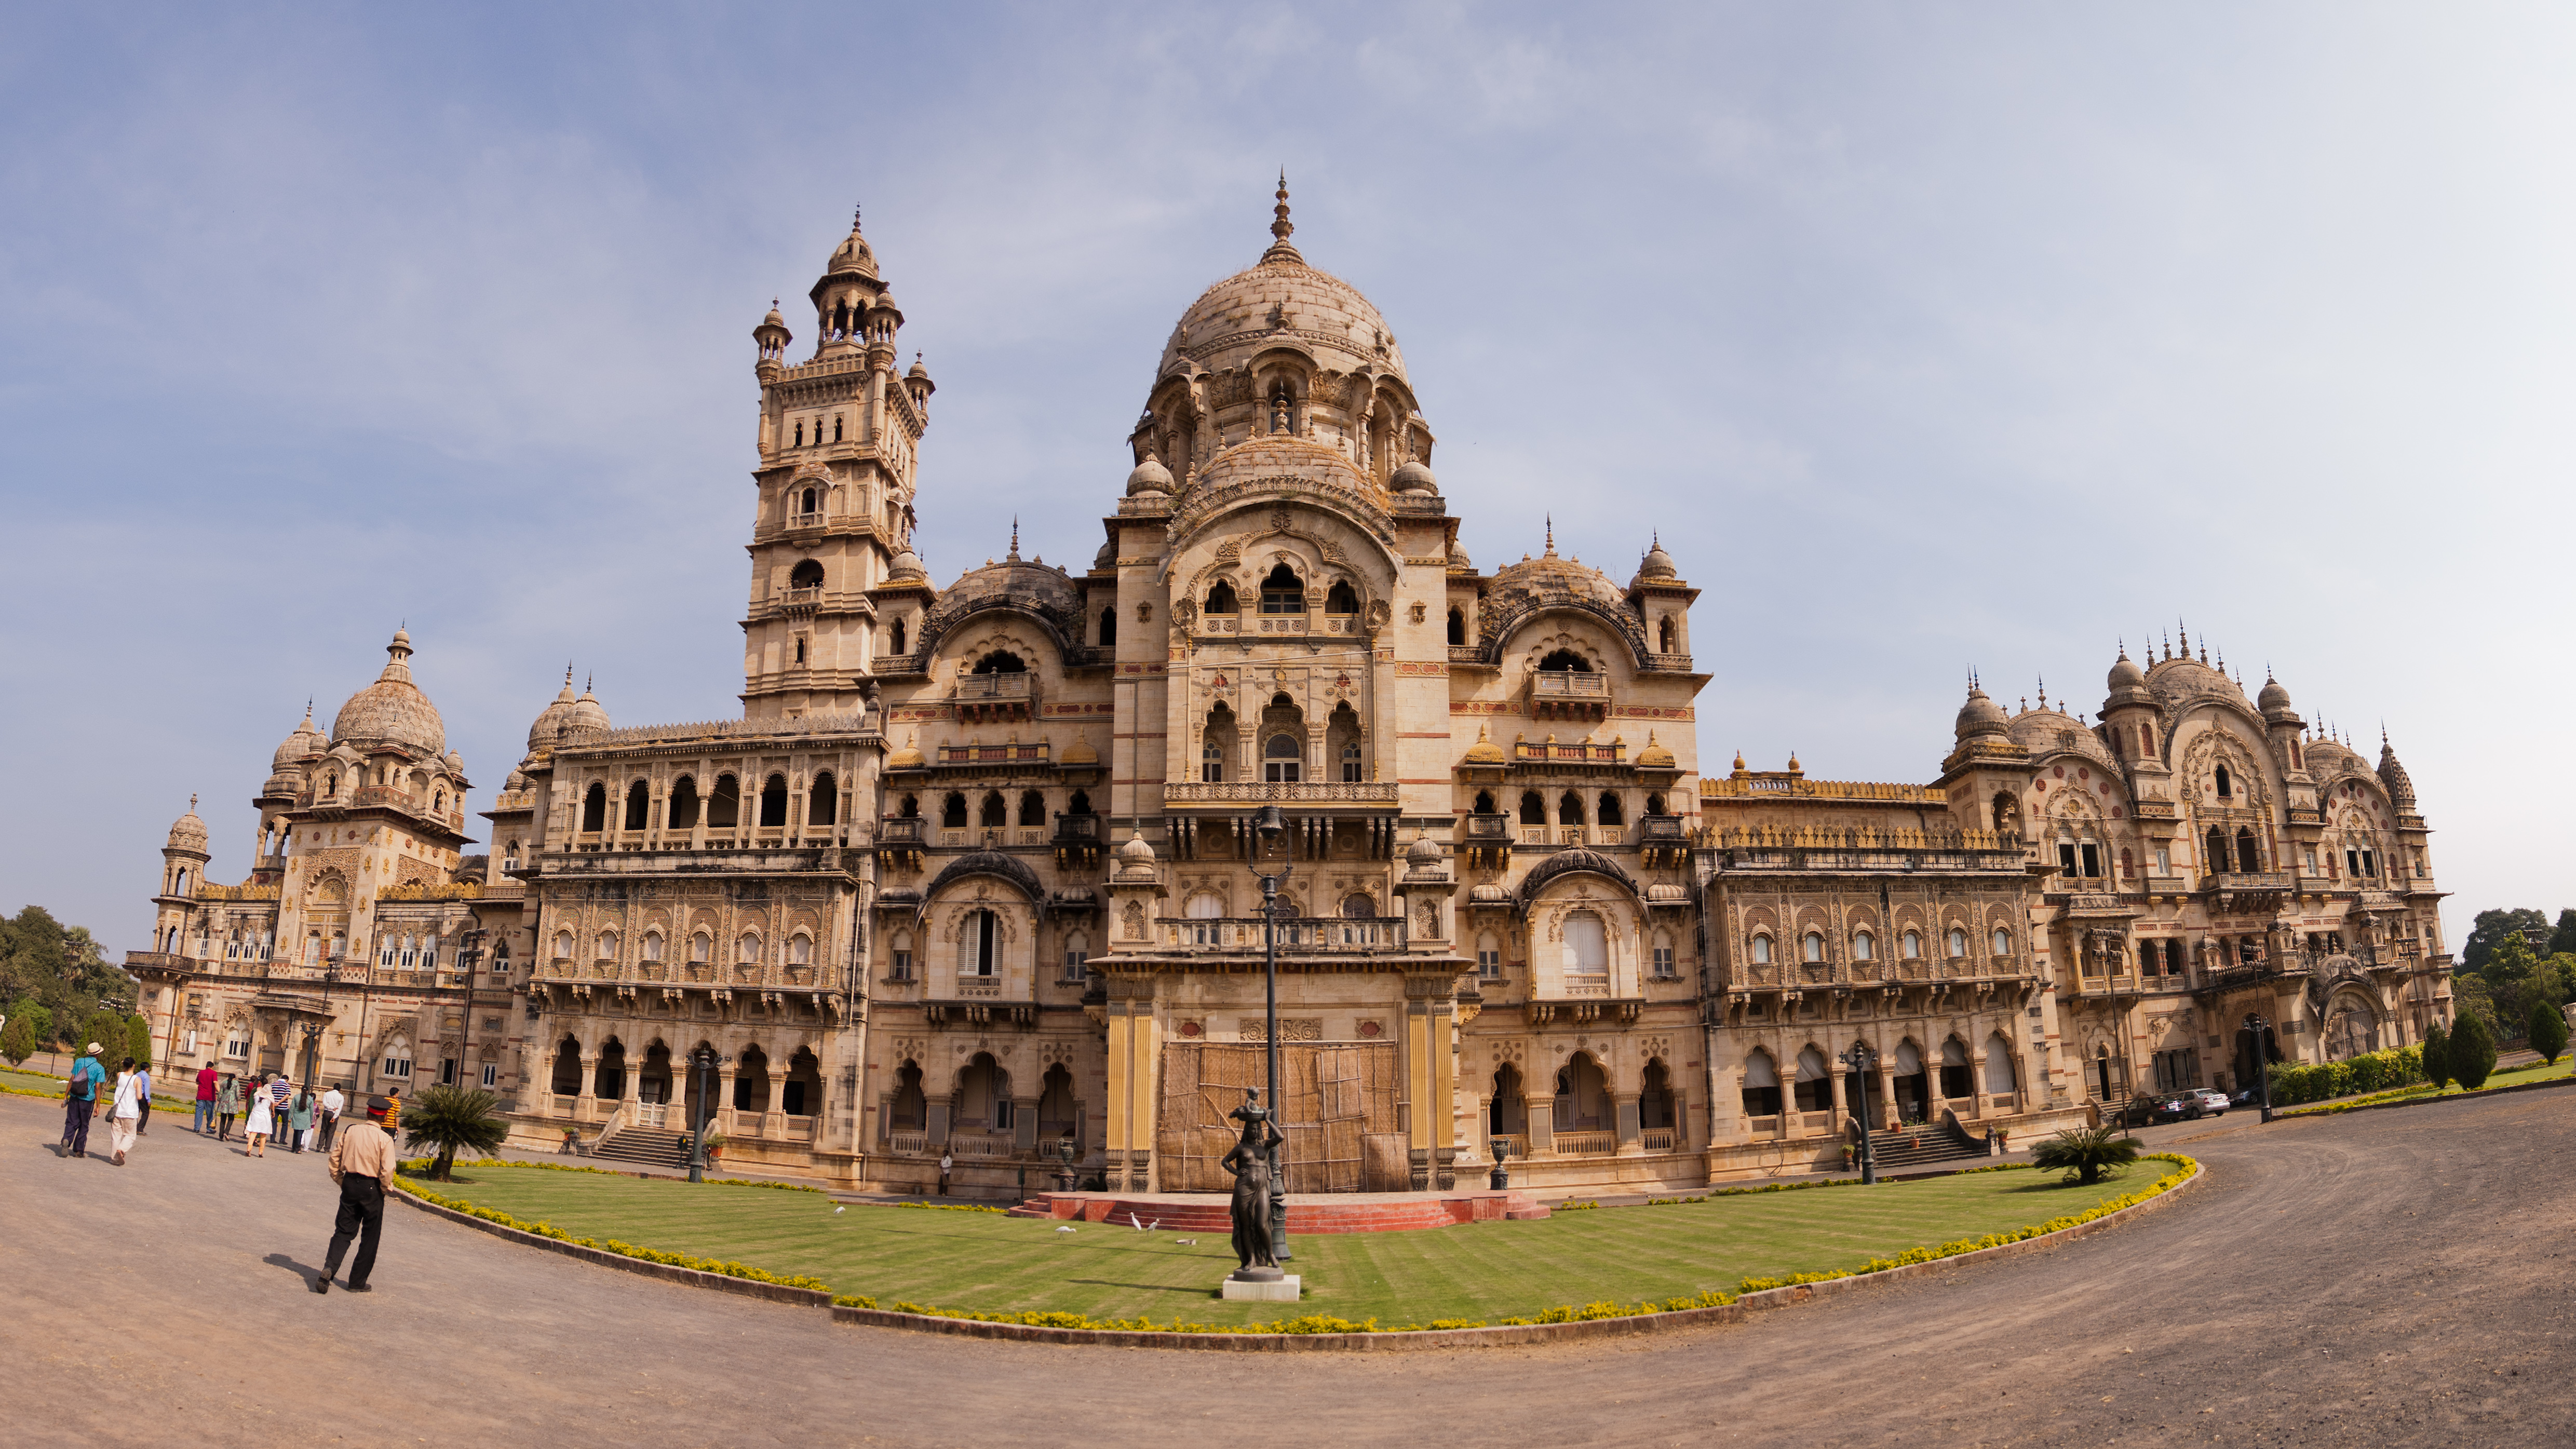 Laxmi vilas palace vadodara palace in india thousand for Architecture design for home in vadodara